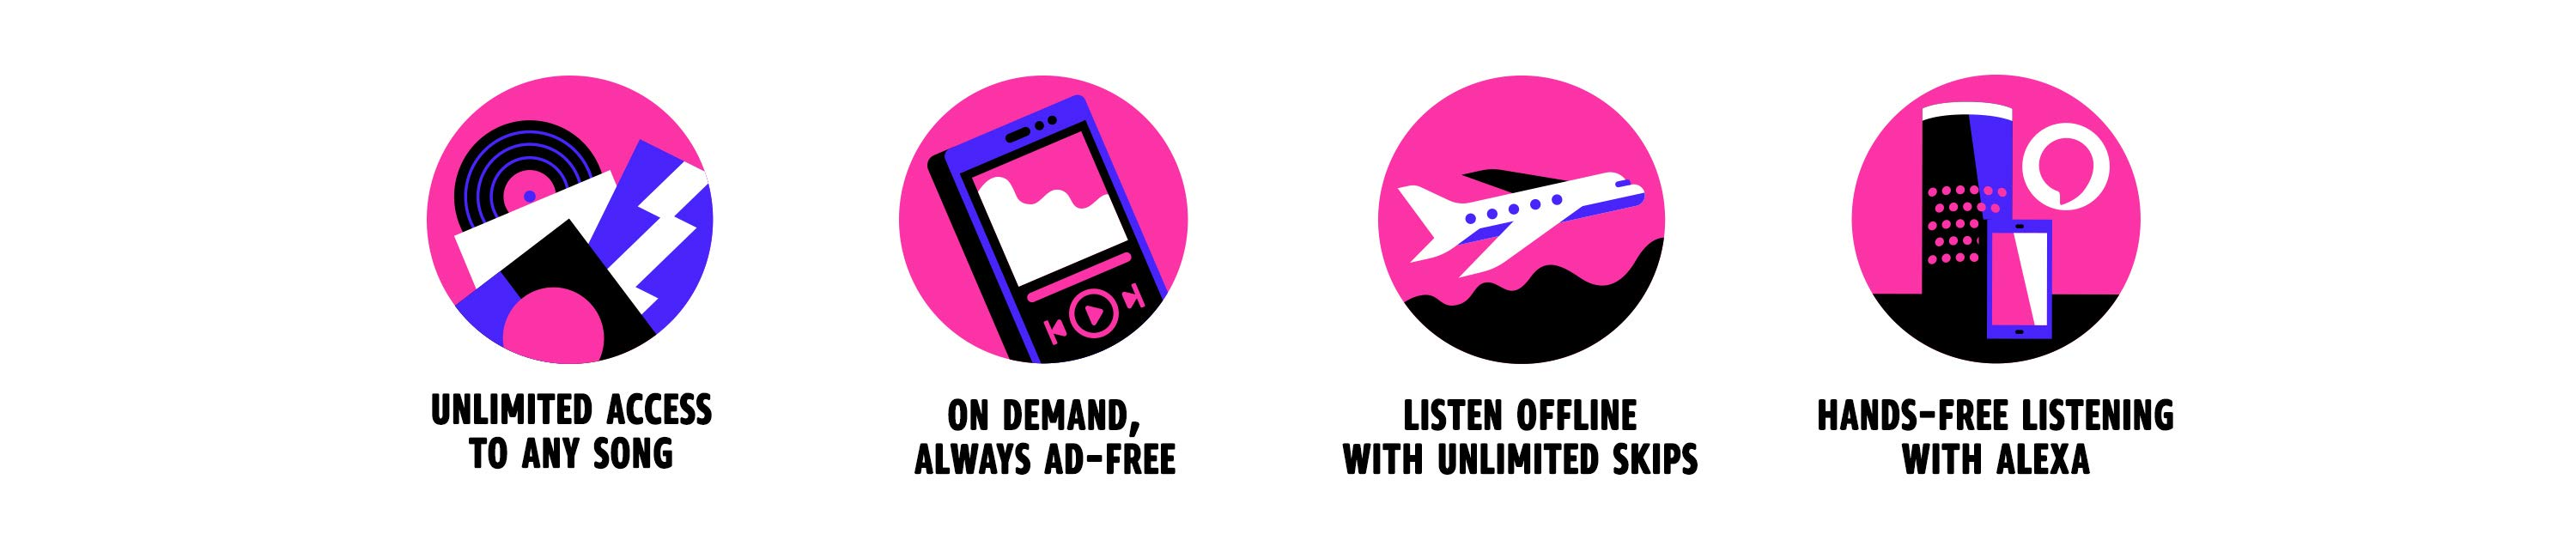 Unlimited access to any songs, On Demand, Always Ad-free